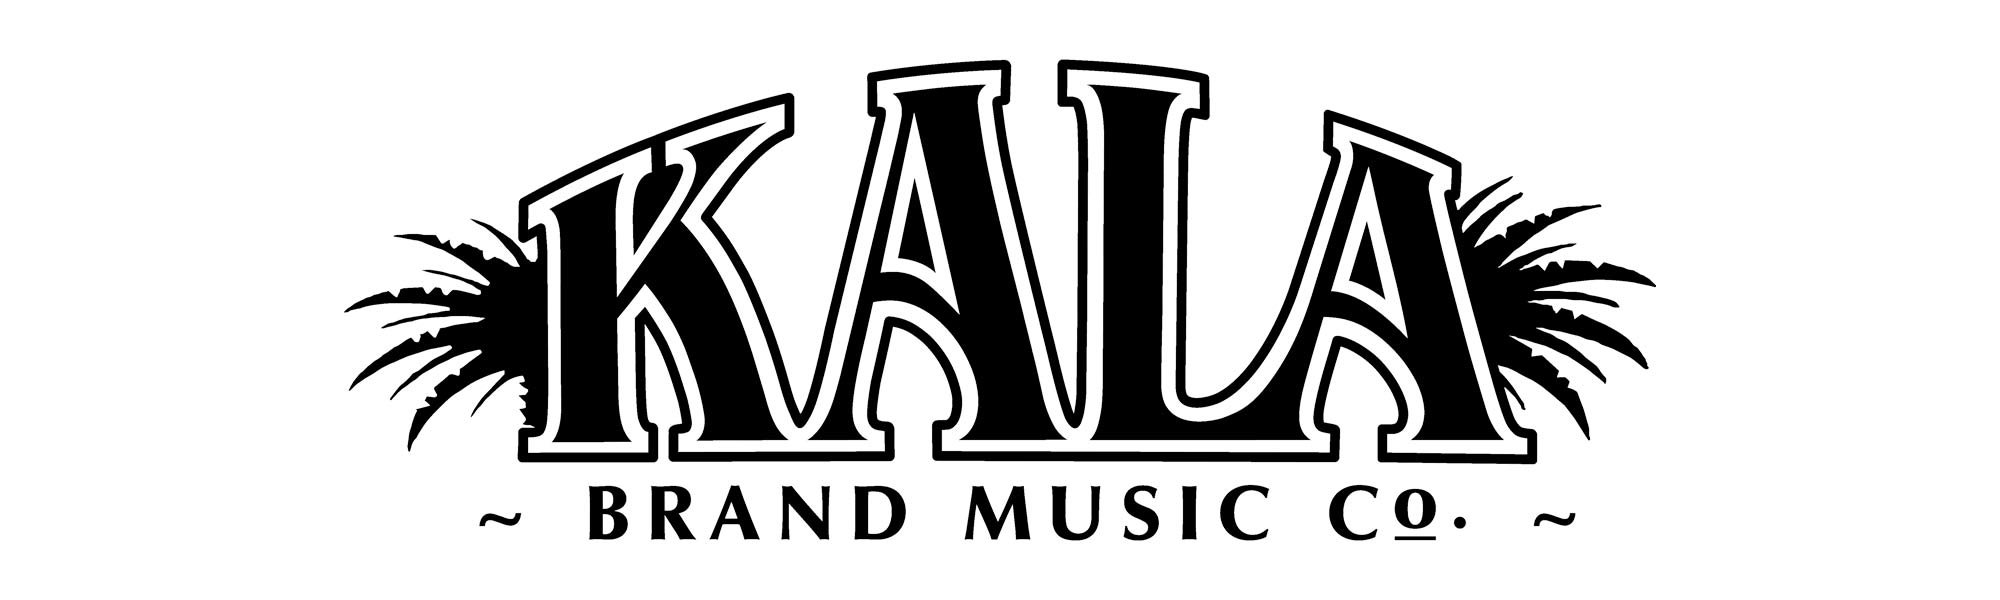 Kala Ukulele in South Jordan